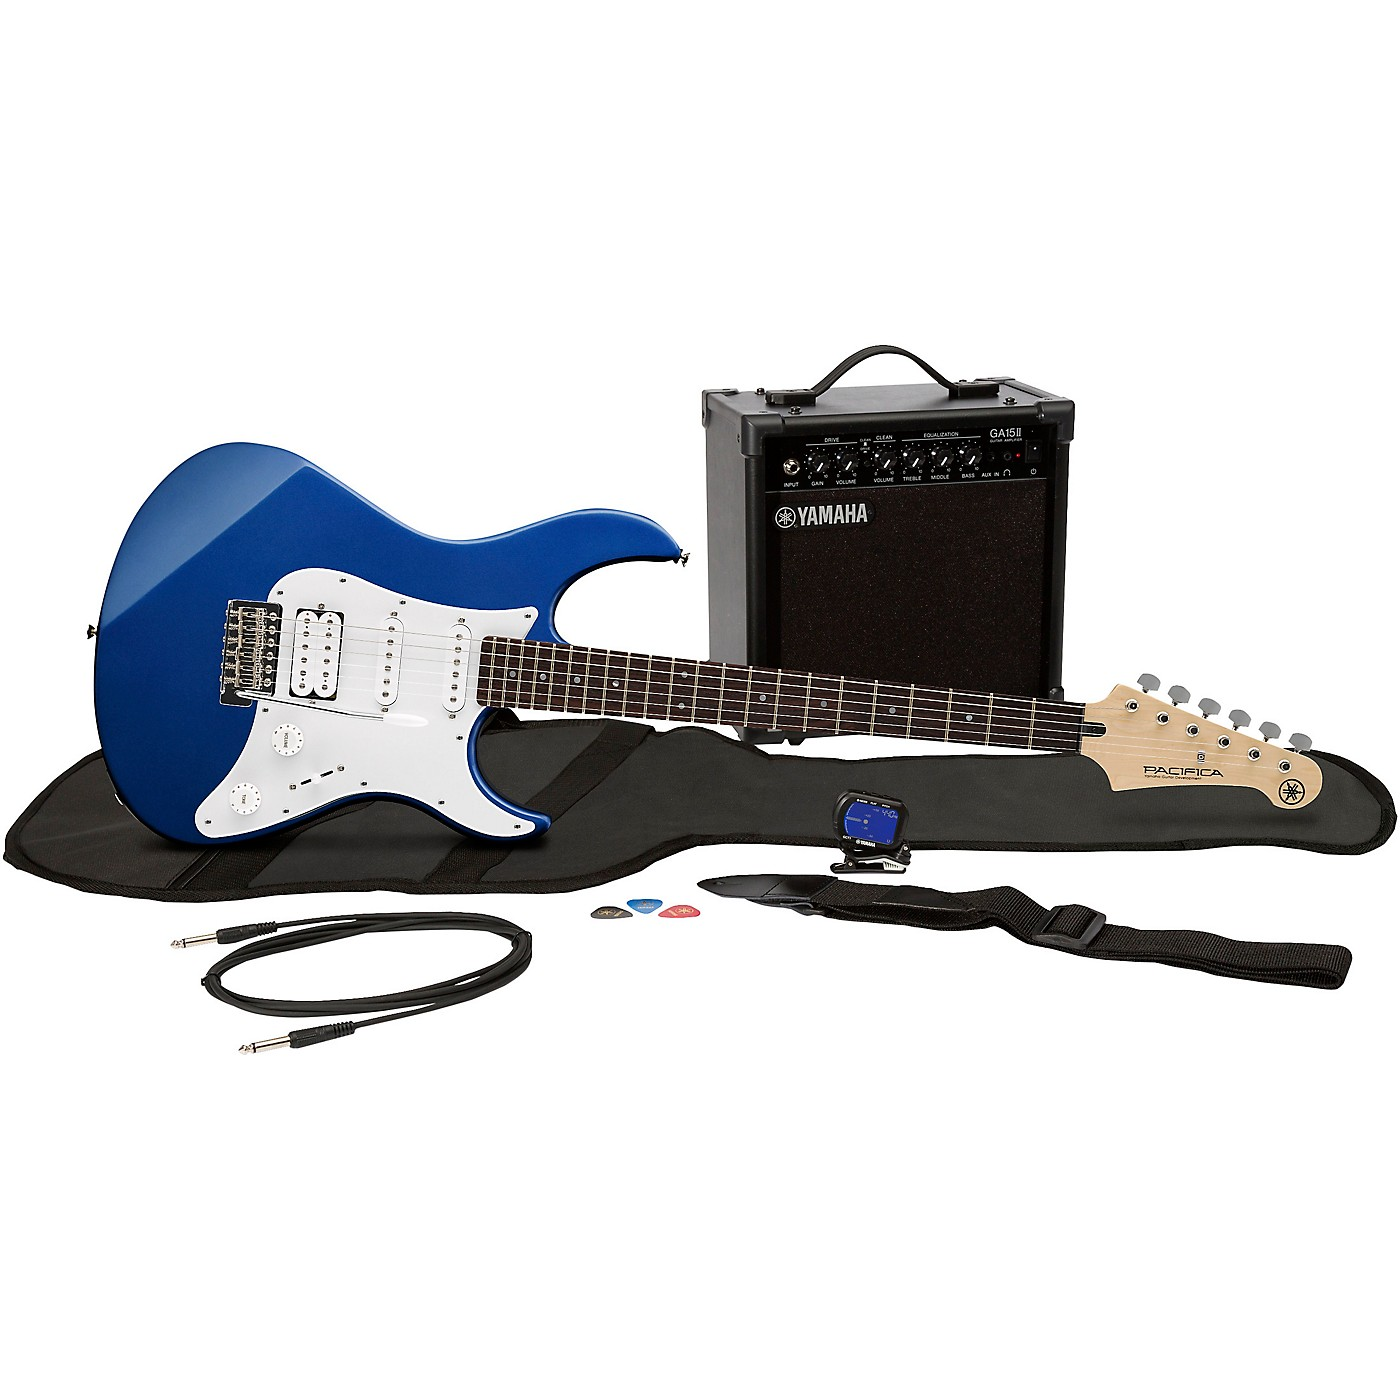 Yamaha GigMaker EG Electric Guitar Pack thumbnail